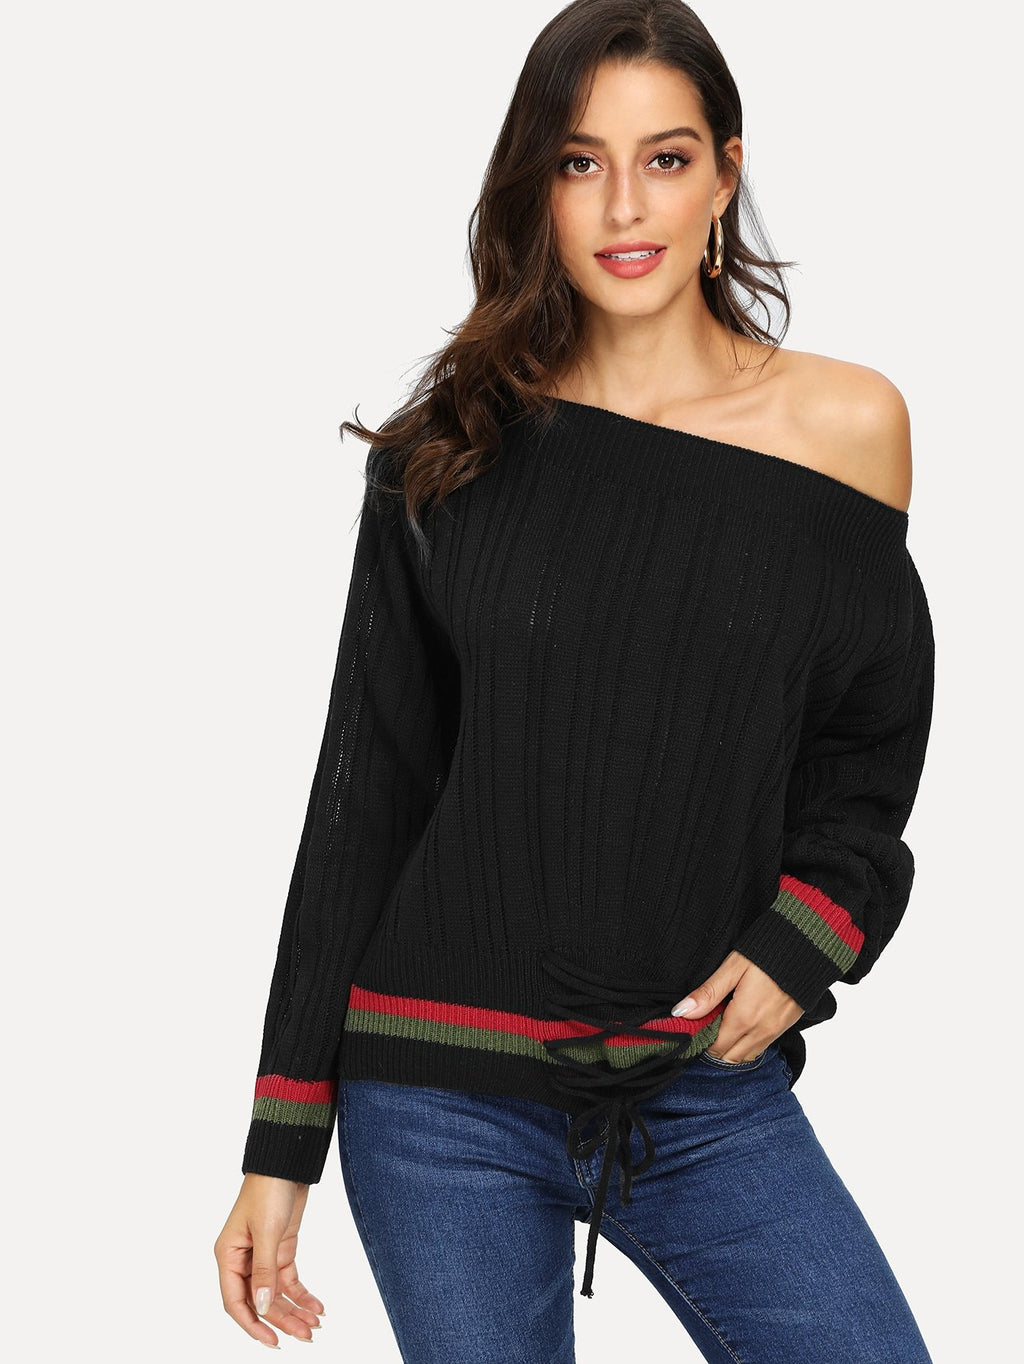 Lace Up Front Striped Trim Sweater